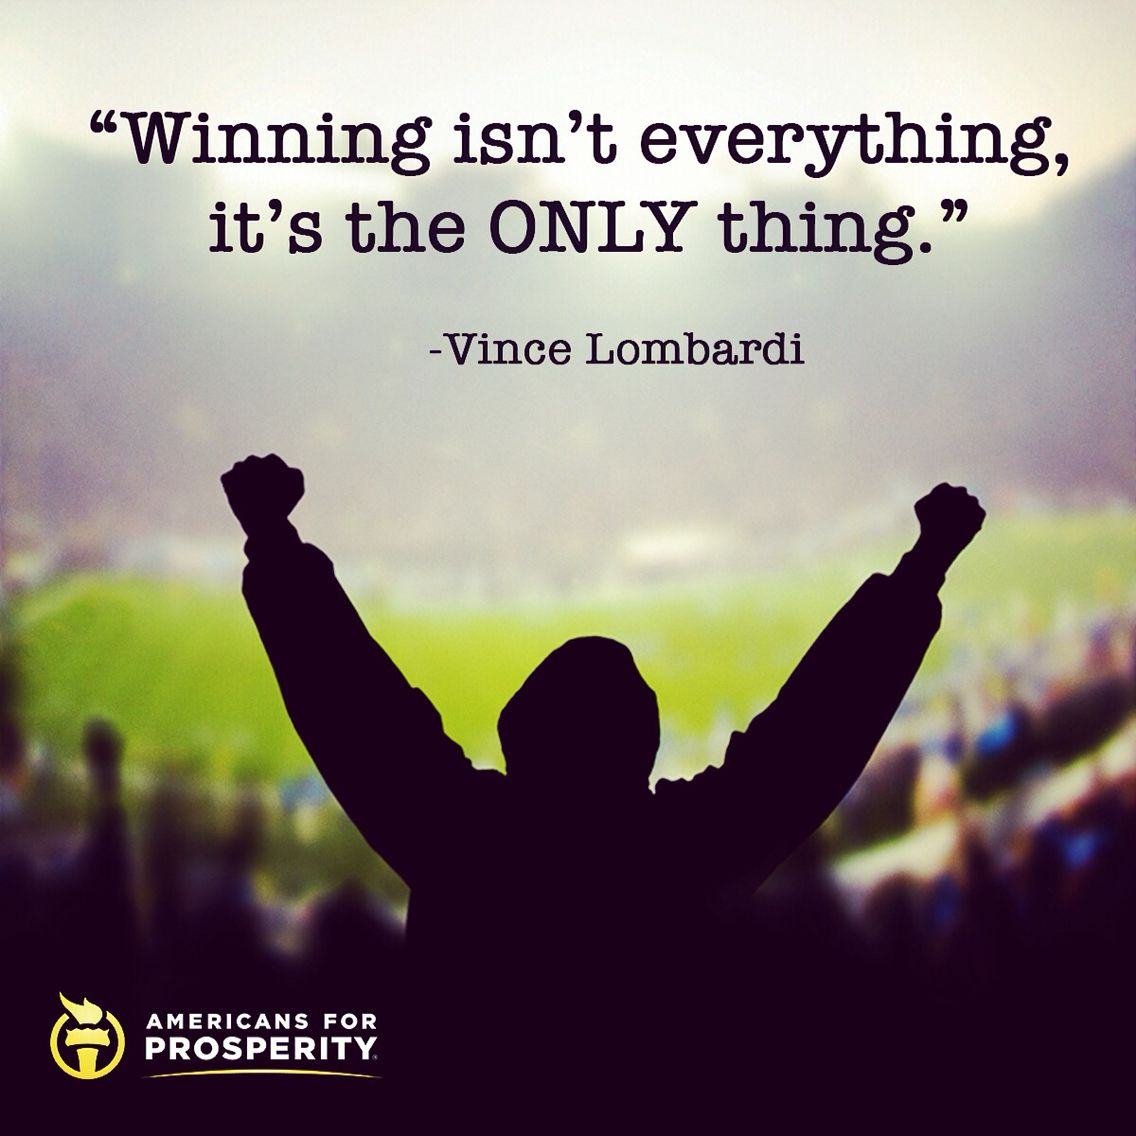 13+ Vince lombardi book of quotes ideas in 2021